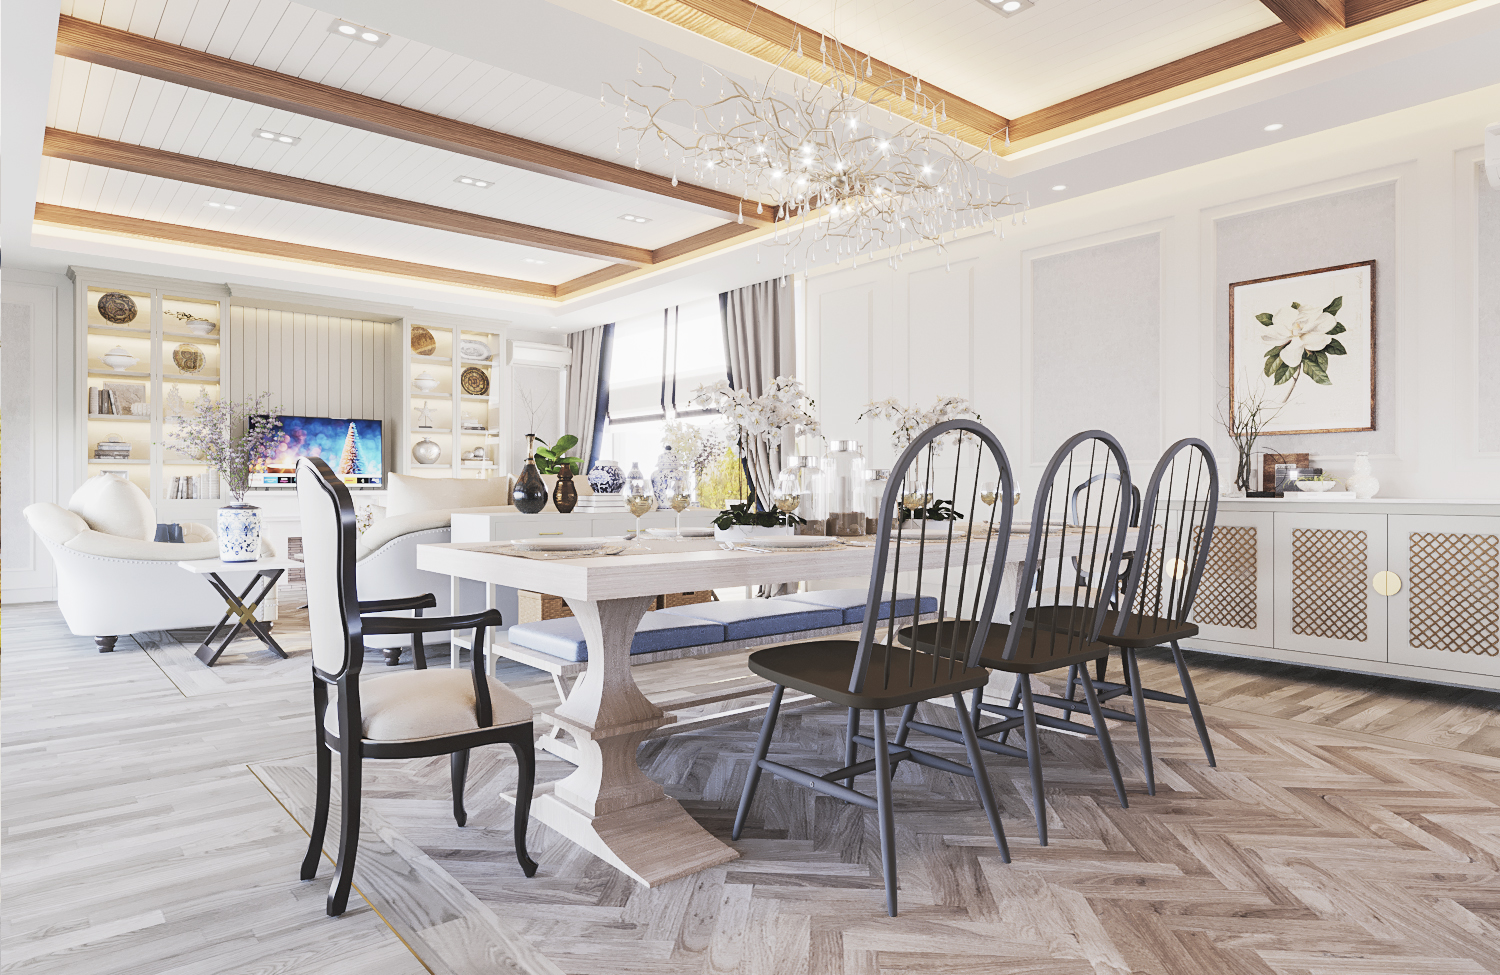 S House - Dining Room (Look 2)